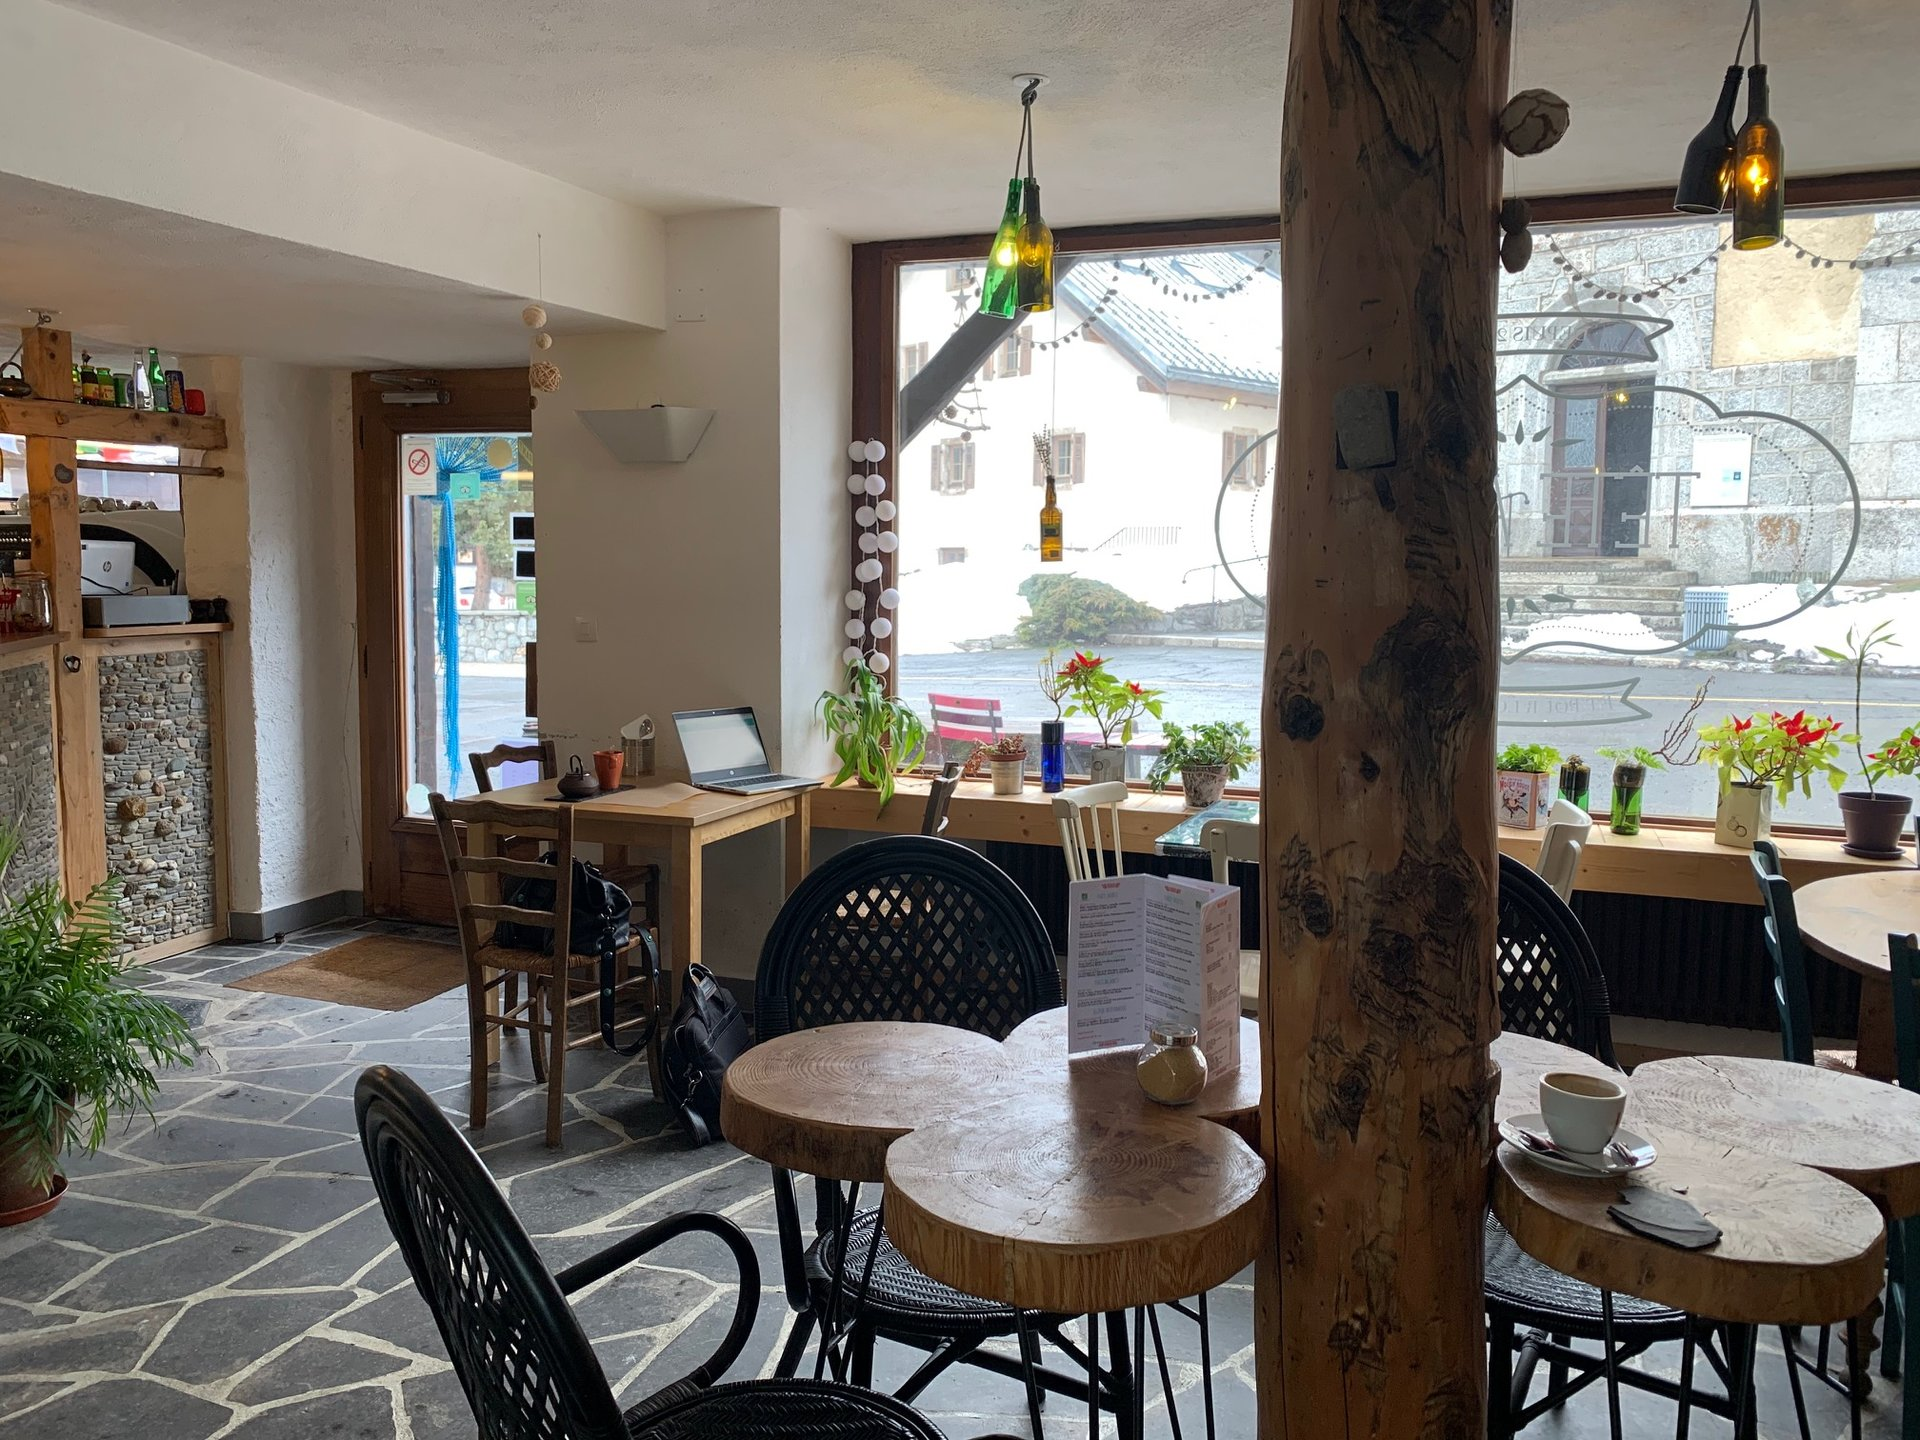 ARGENTIERE CENTER - COMMERCIAL PROPERTY OF LITTLE RESTAURATION